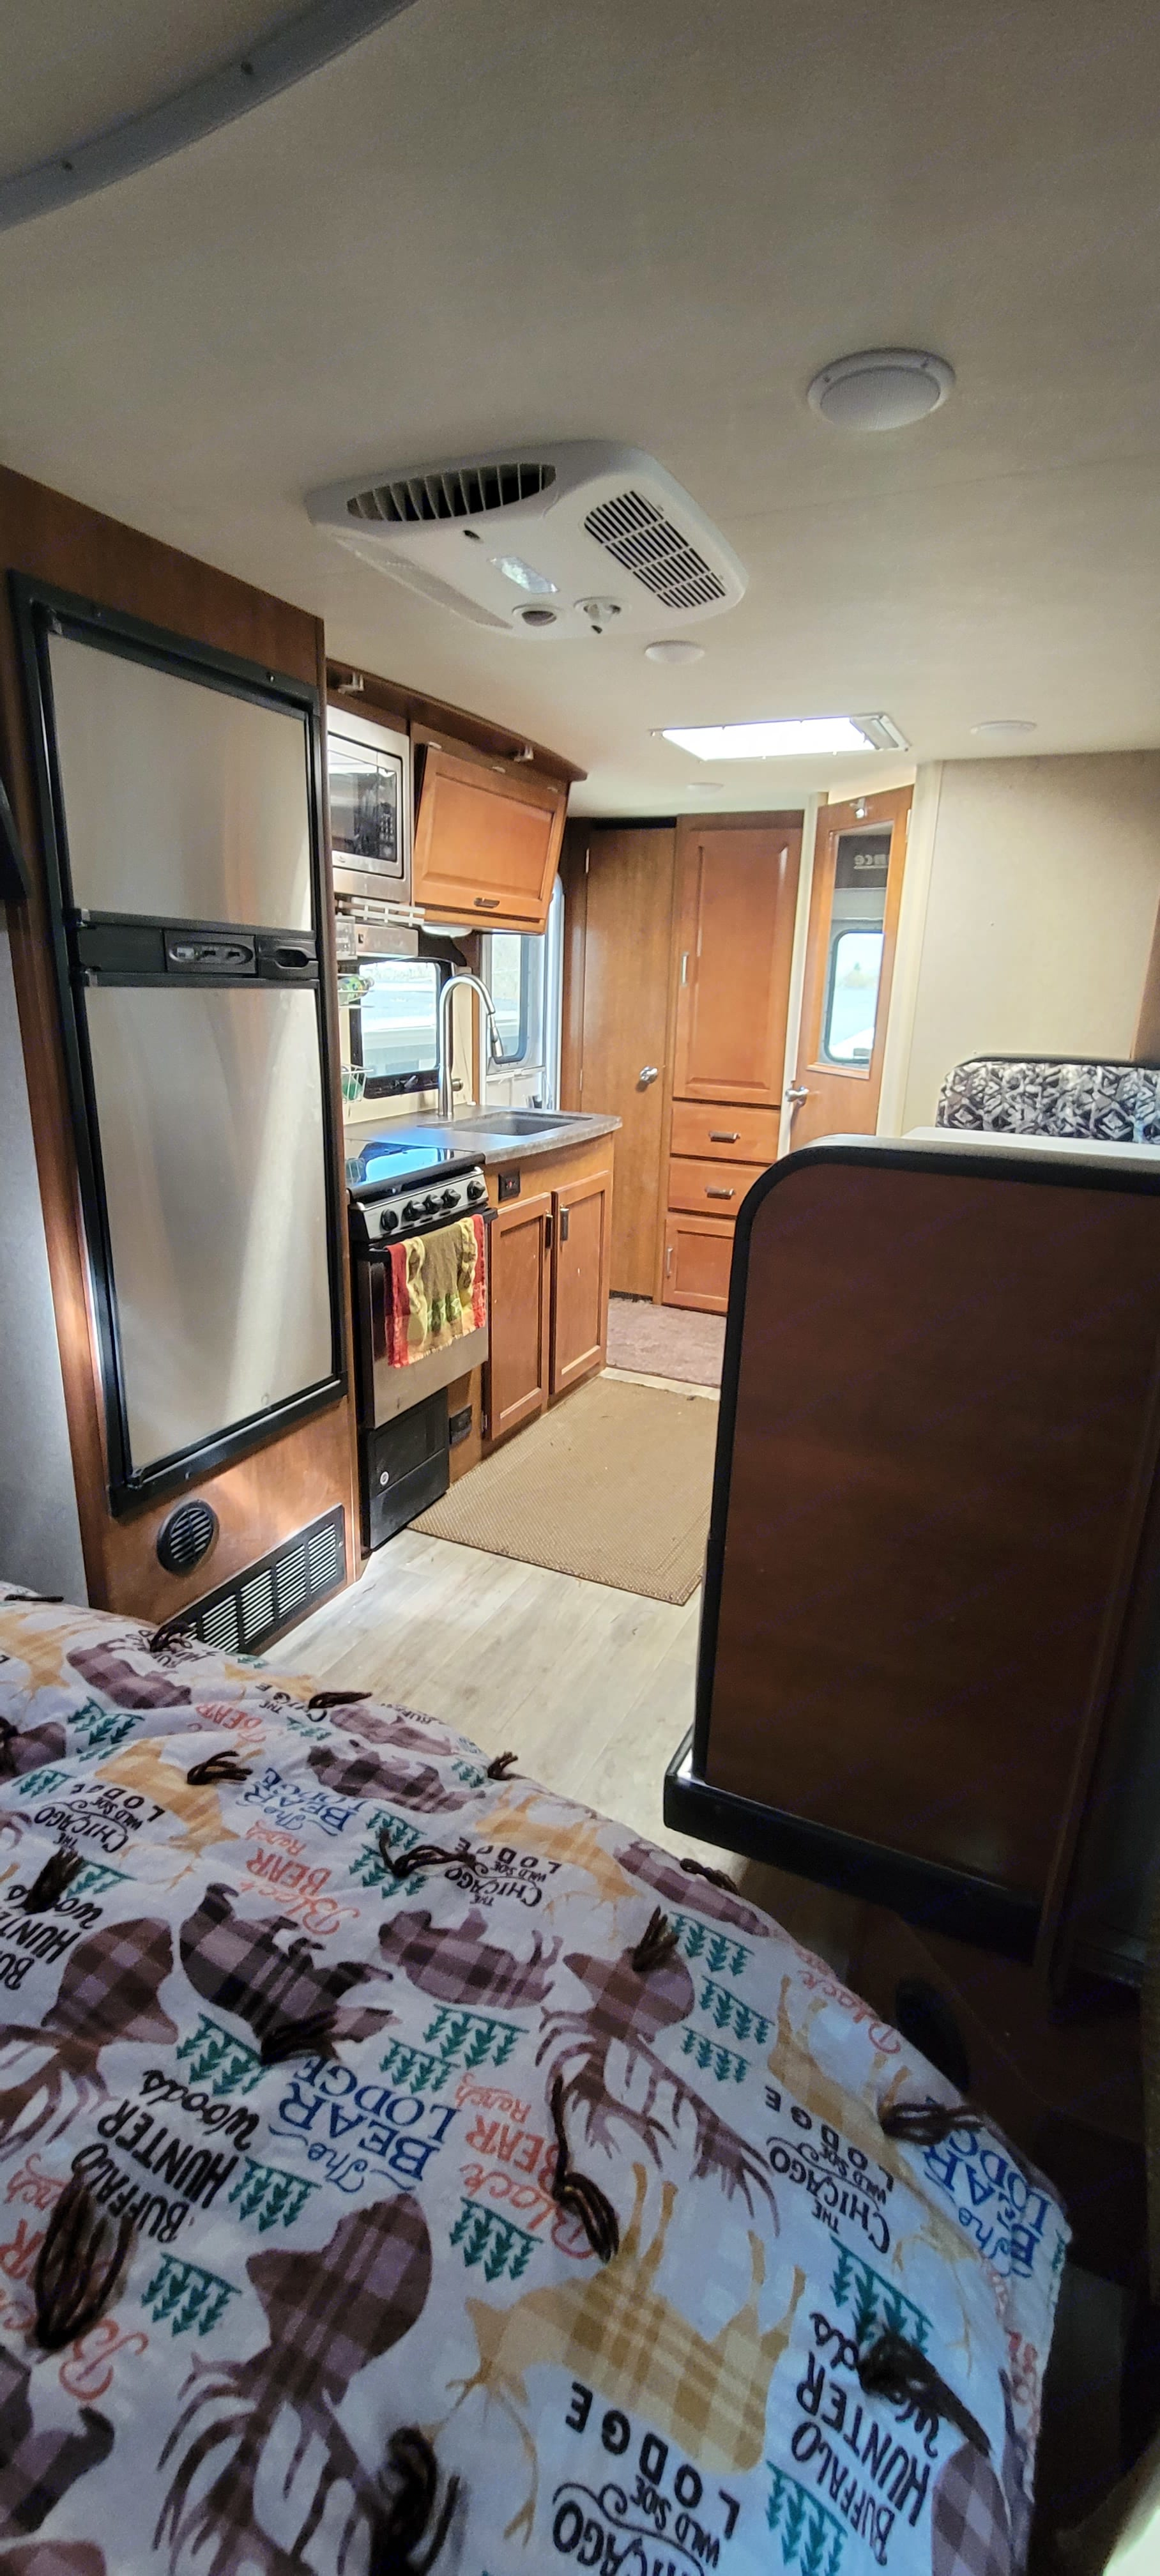 Perfect for cooking on rainy or colder days. Fridge and freezer big enough you don't need a bunch of coolers. Oven, stove, and microwave . Lance 1995 2018